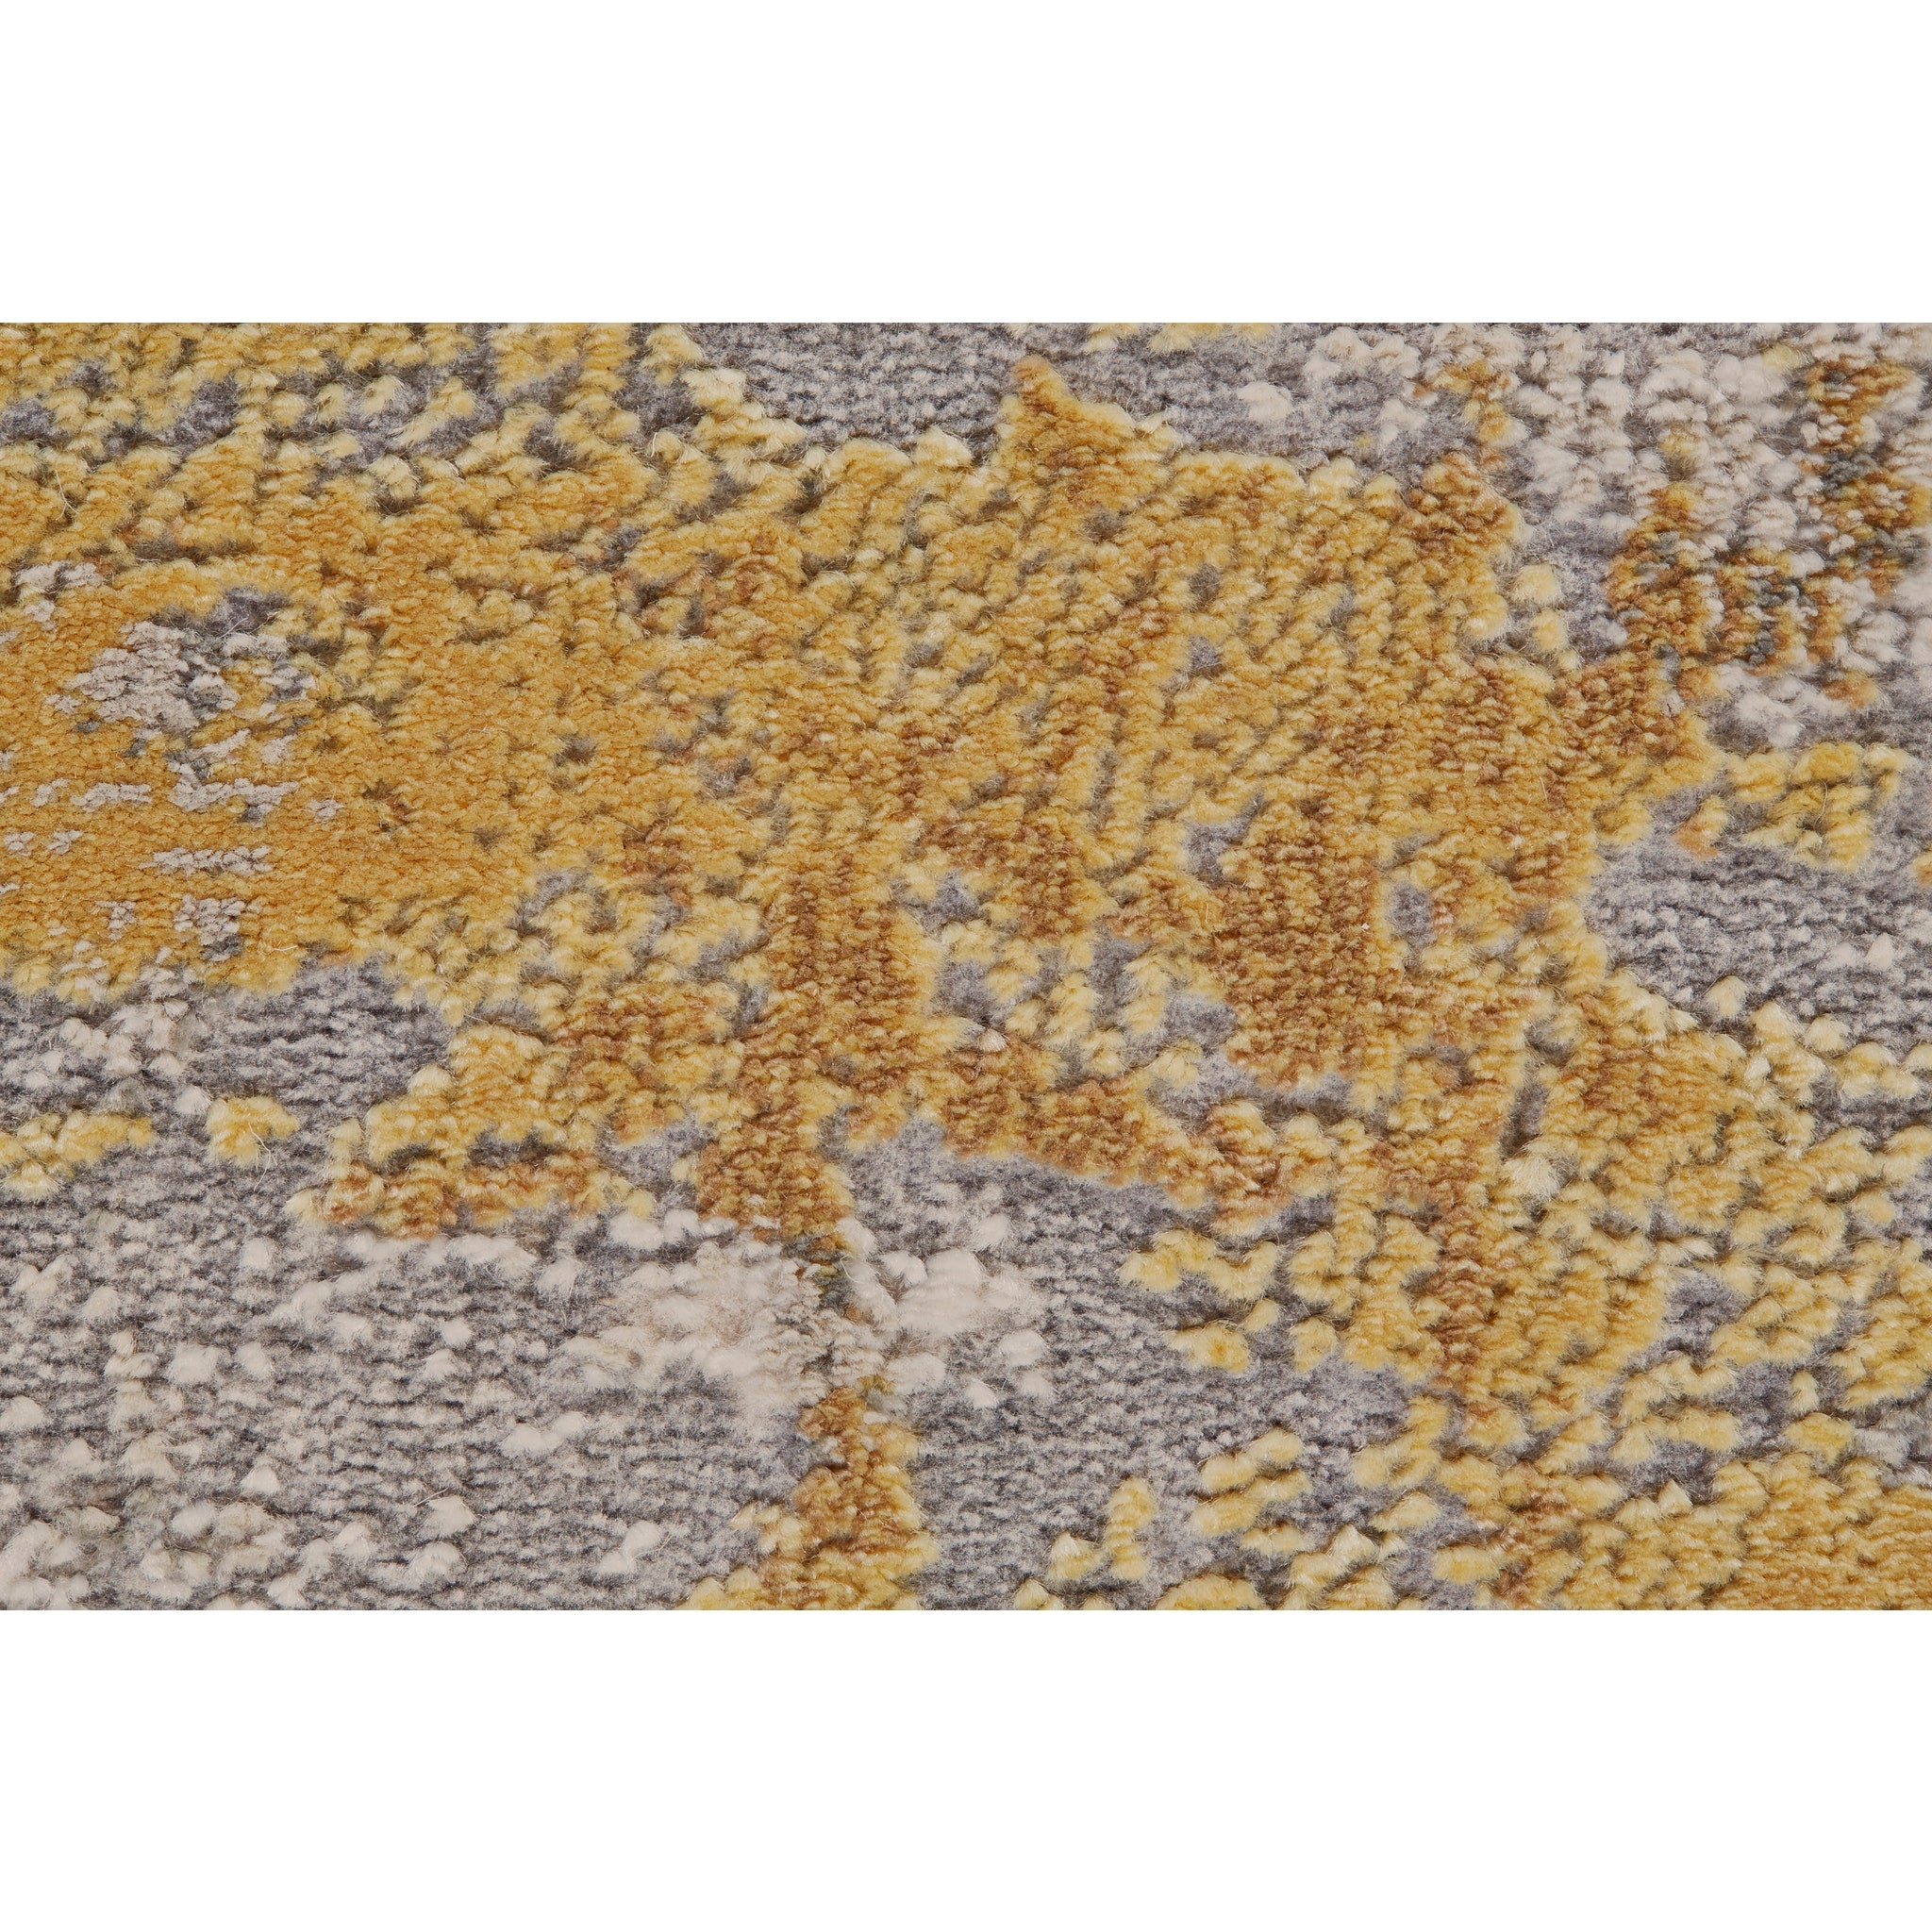 Waldor Gold/Birch Rug